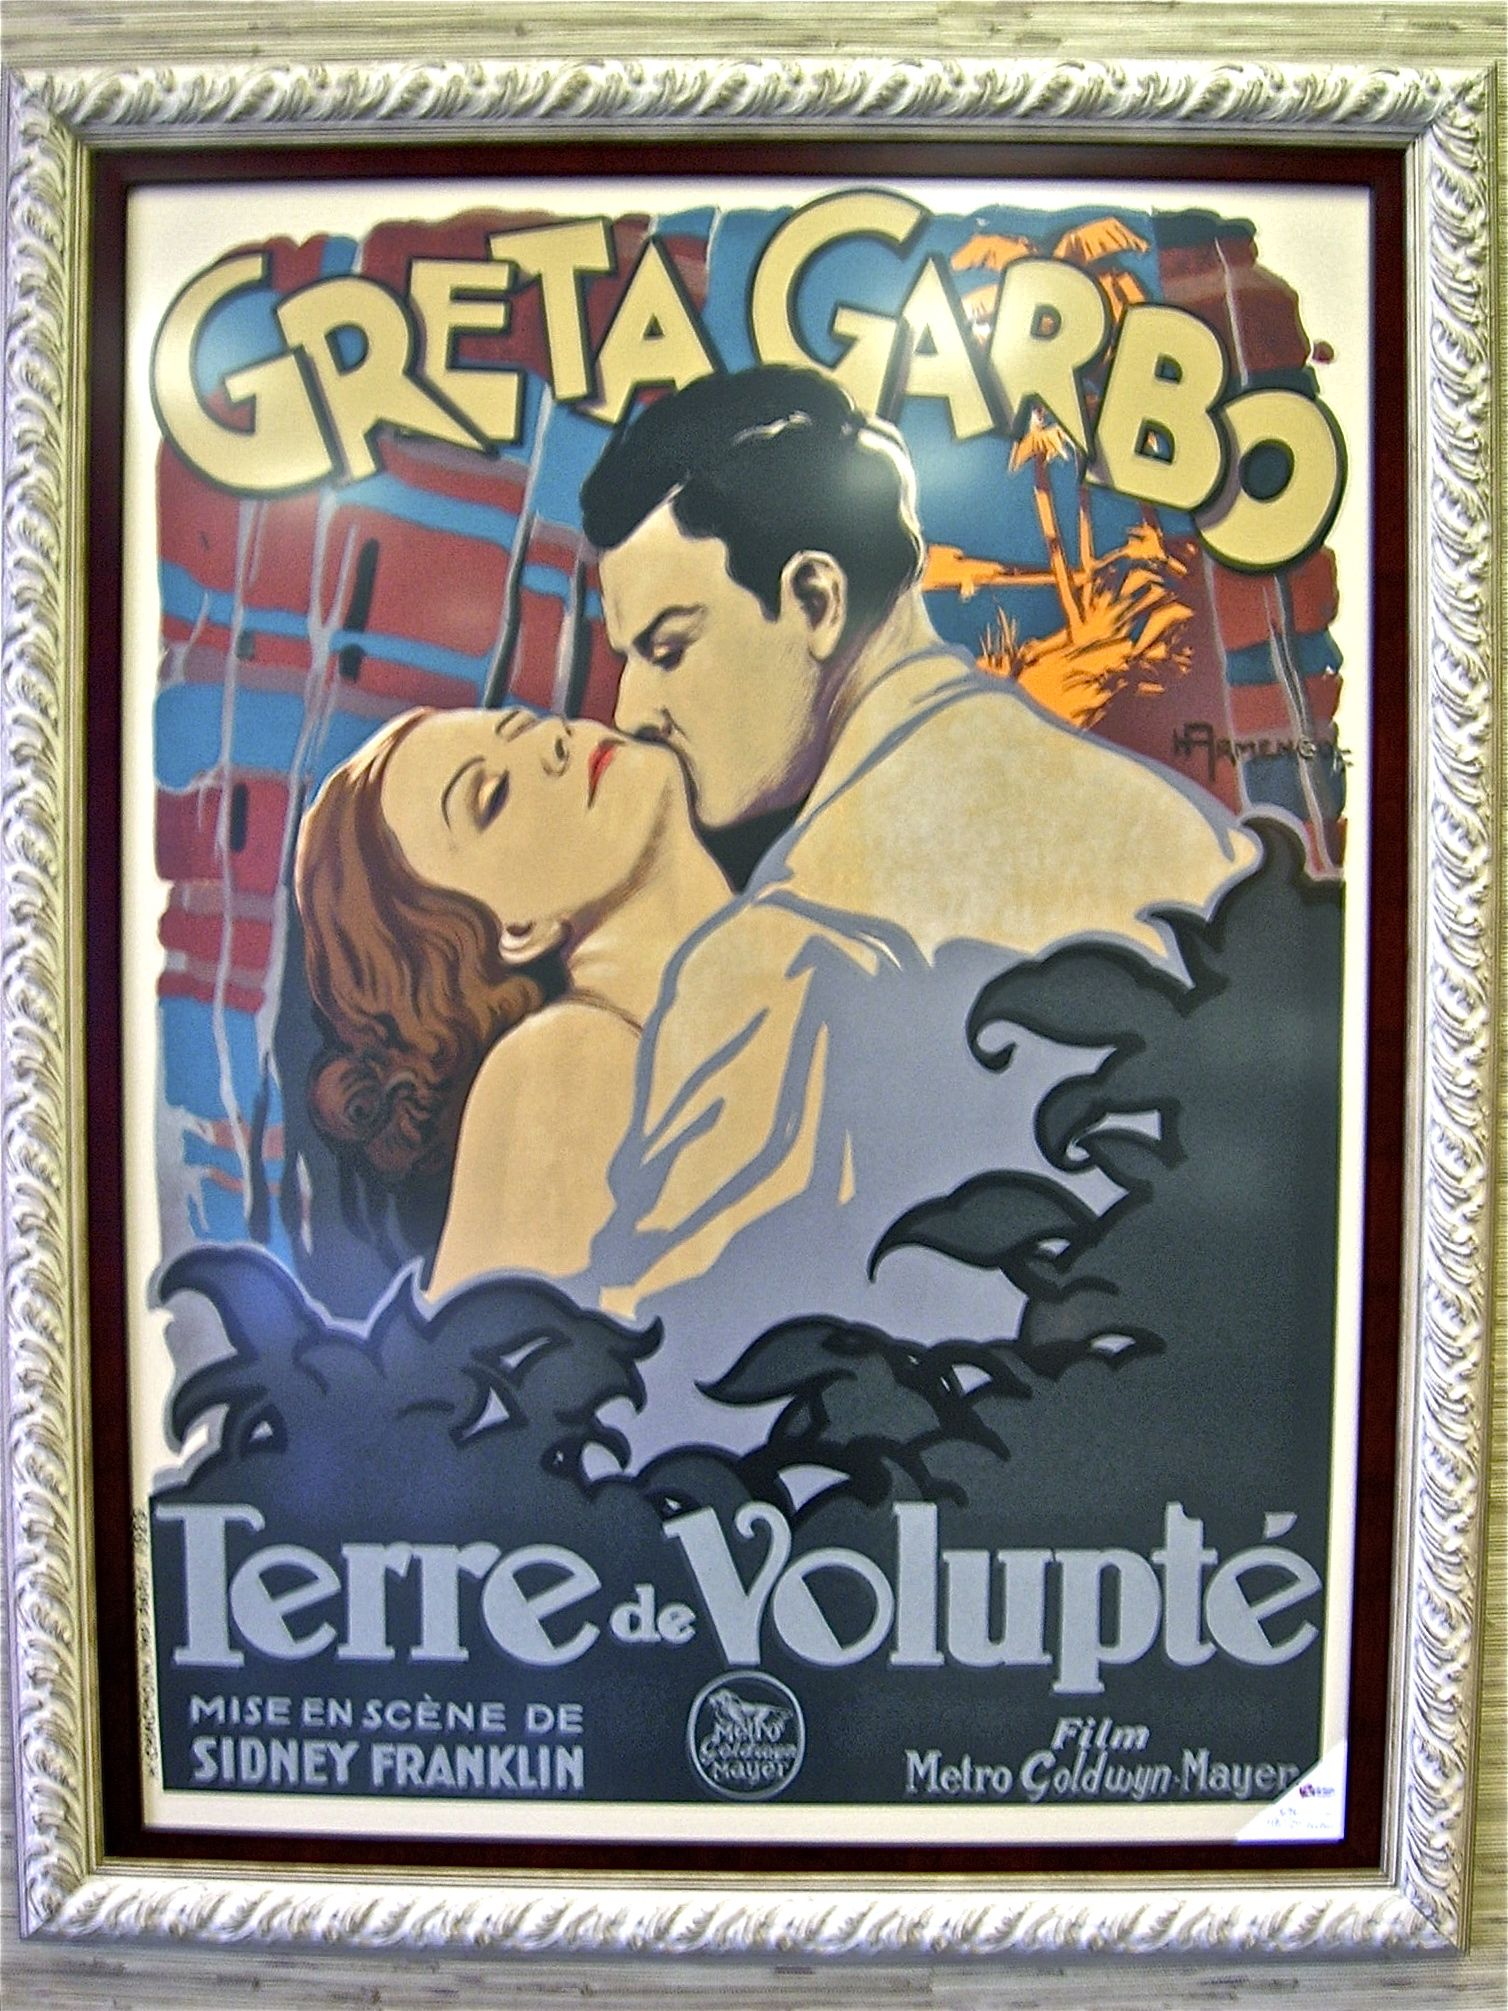 Getting the most out of framing greta garbo poster hang with advertisements jeuxipadfo Gallery